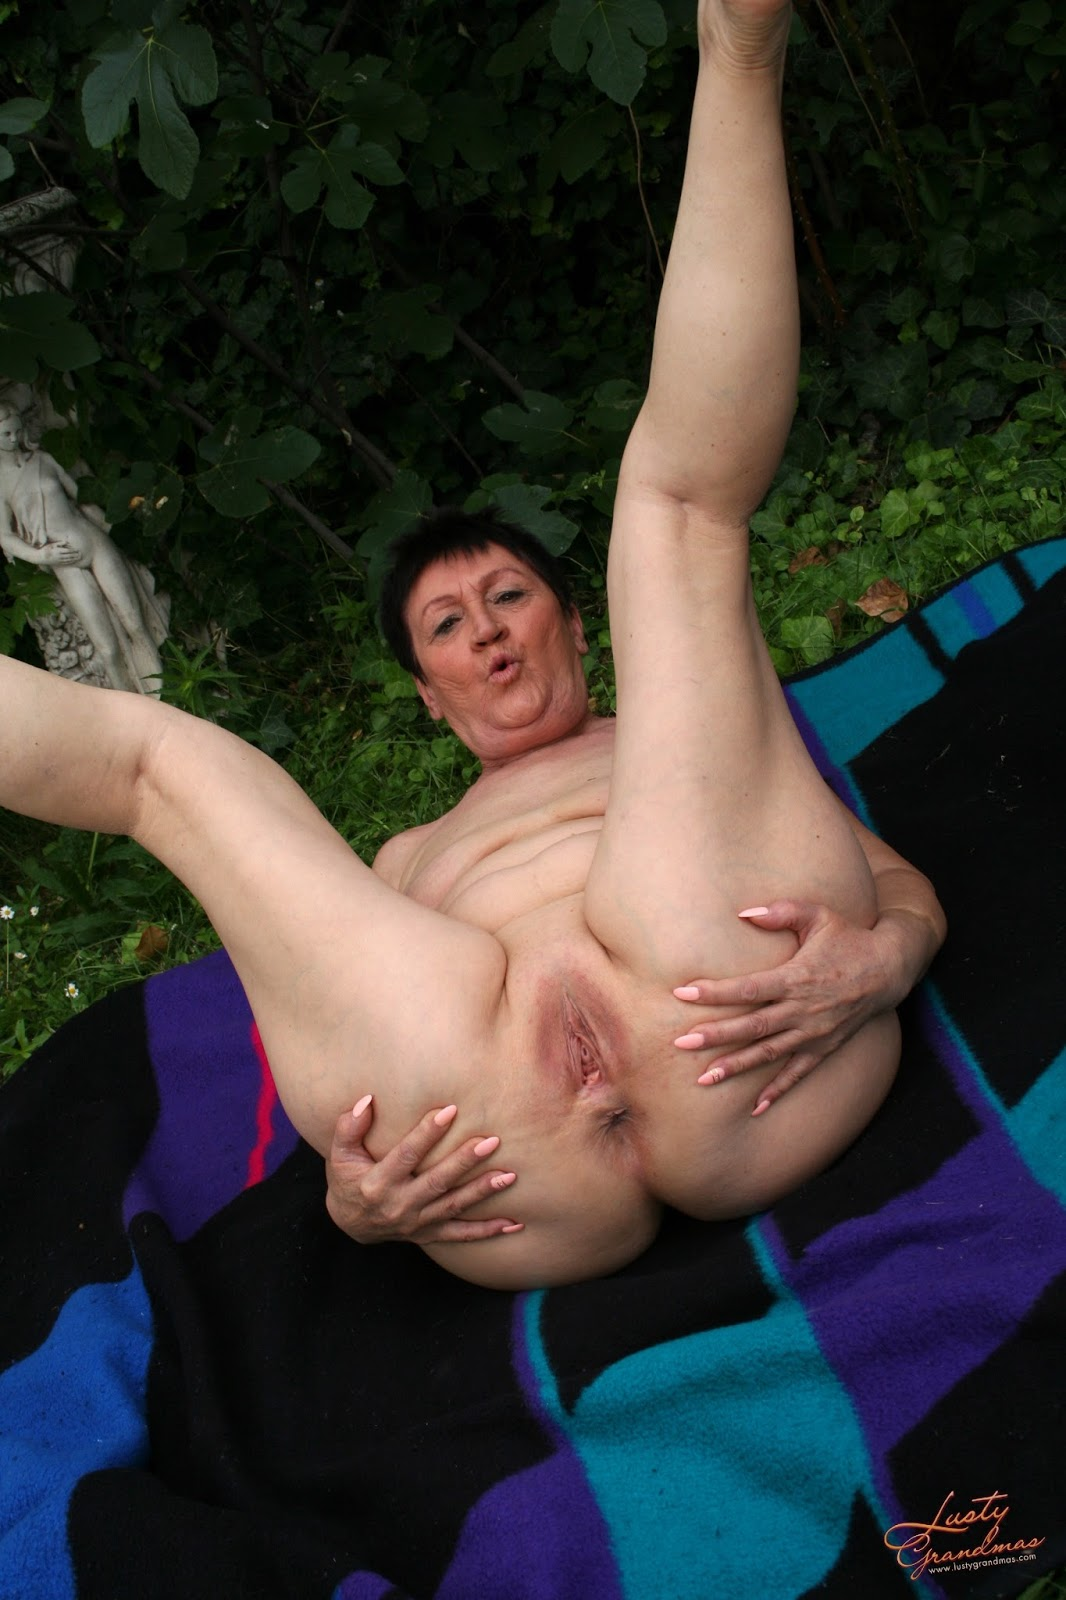 Uk mature mom with saggy tits and hairy cunt - 2 4